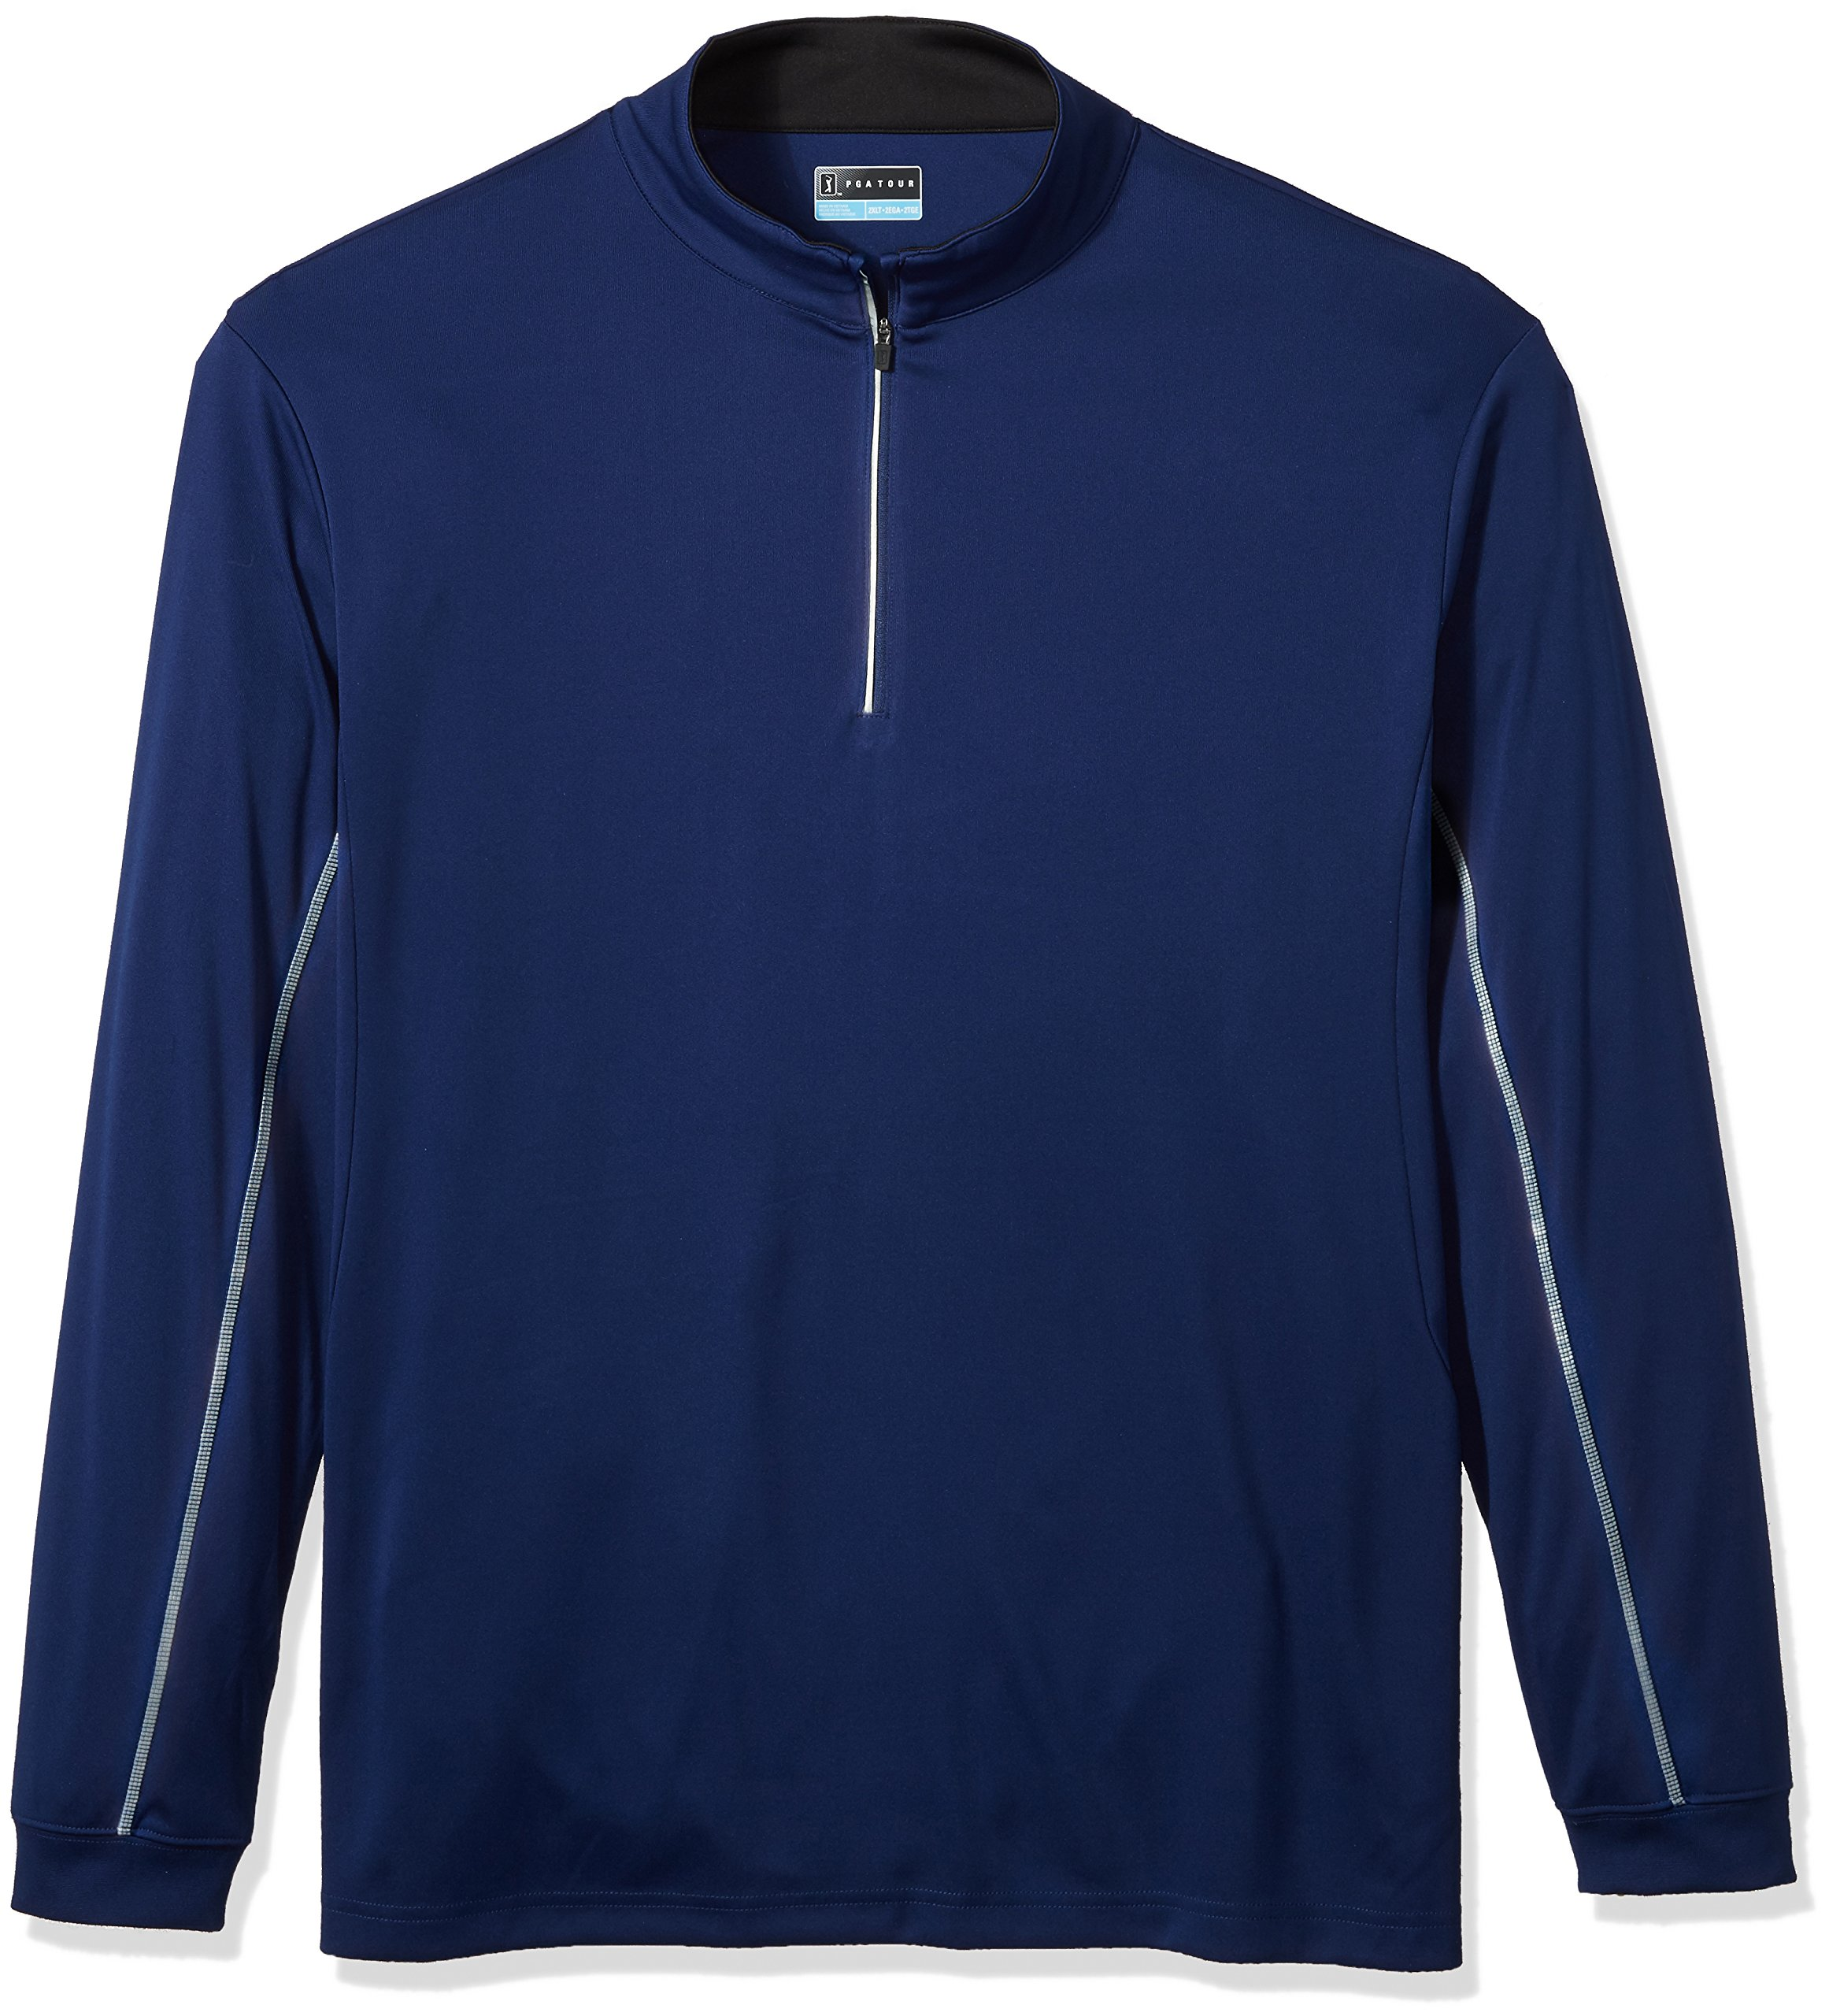 PGA TOUR Men's Big and Tall Elements Wr Long Sleeve 1/4 Zip Pullovers, Blue Depths_PVKF70E2, 3XLT